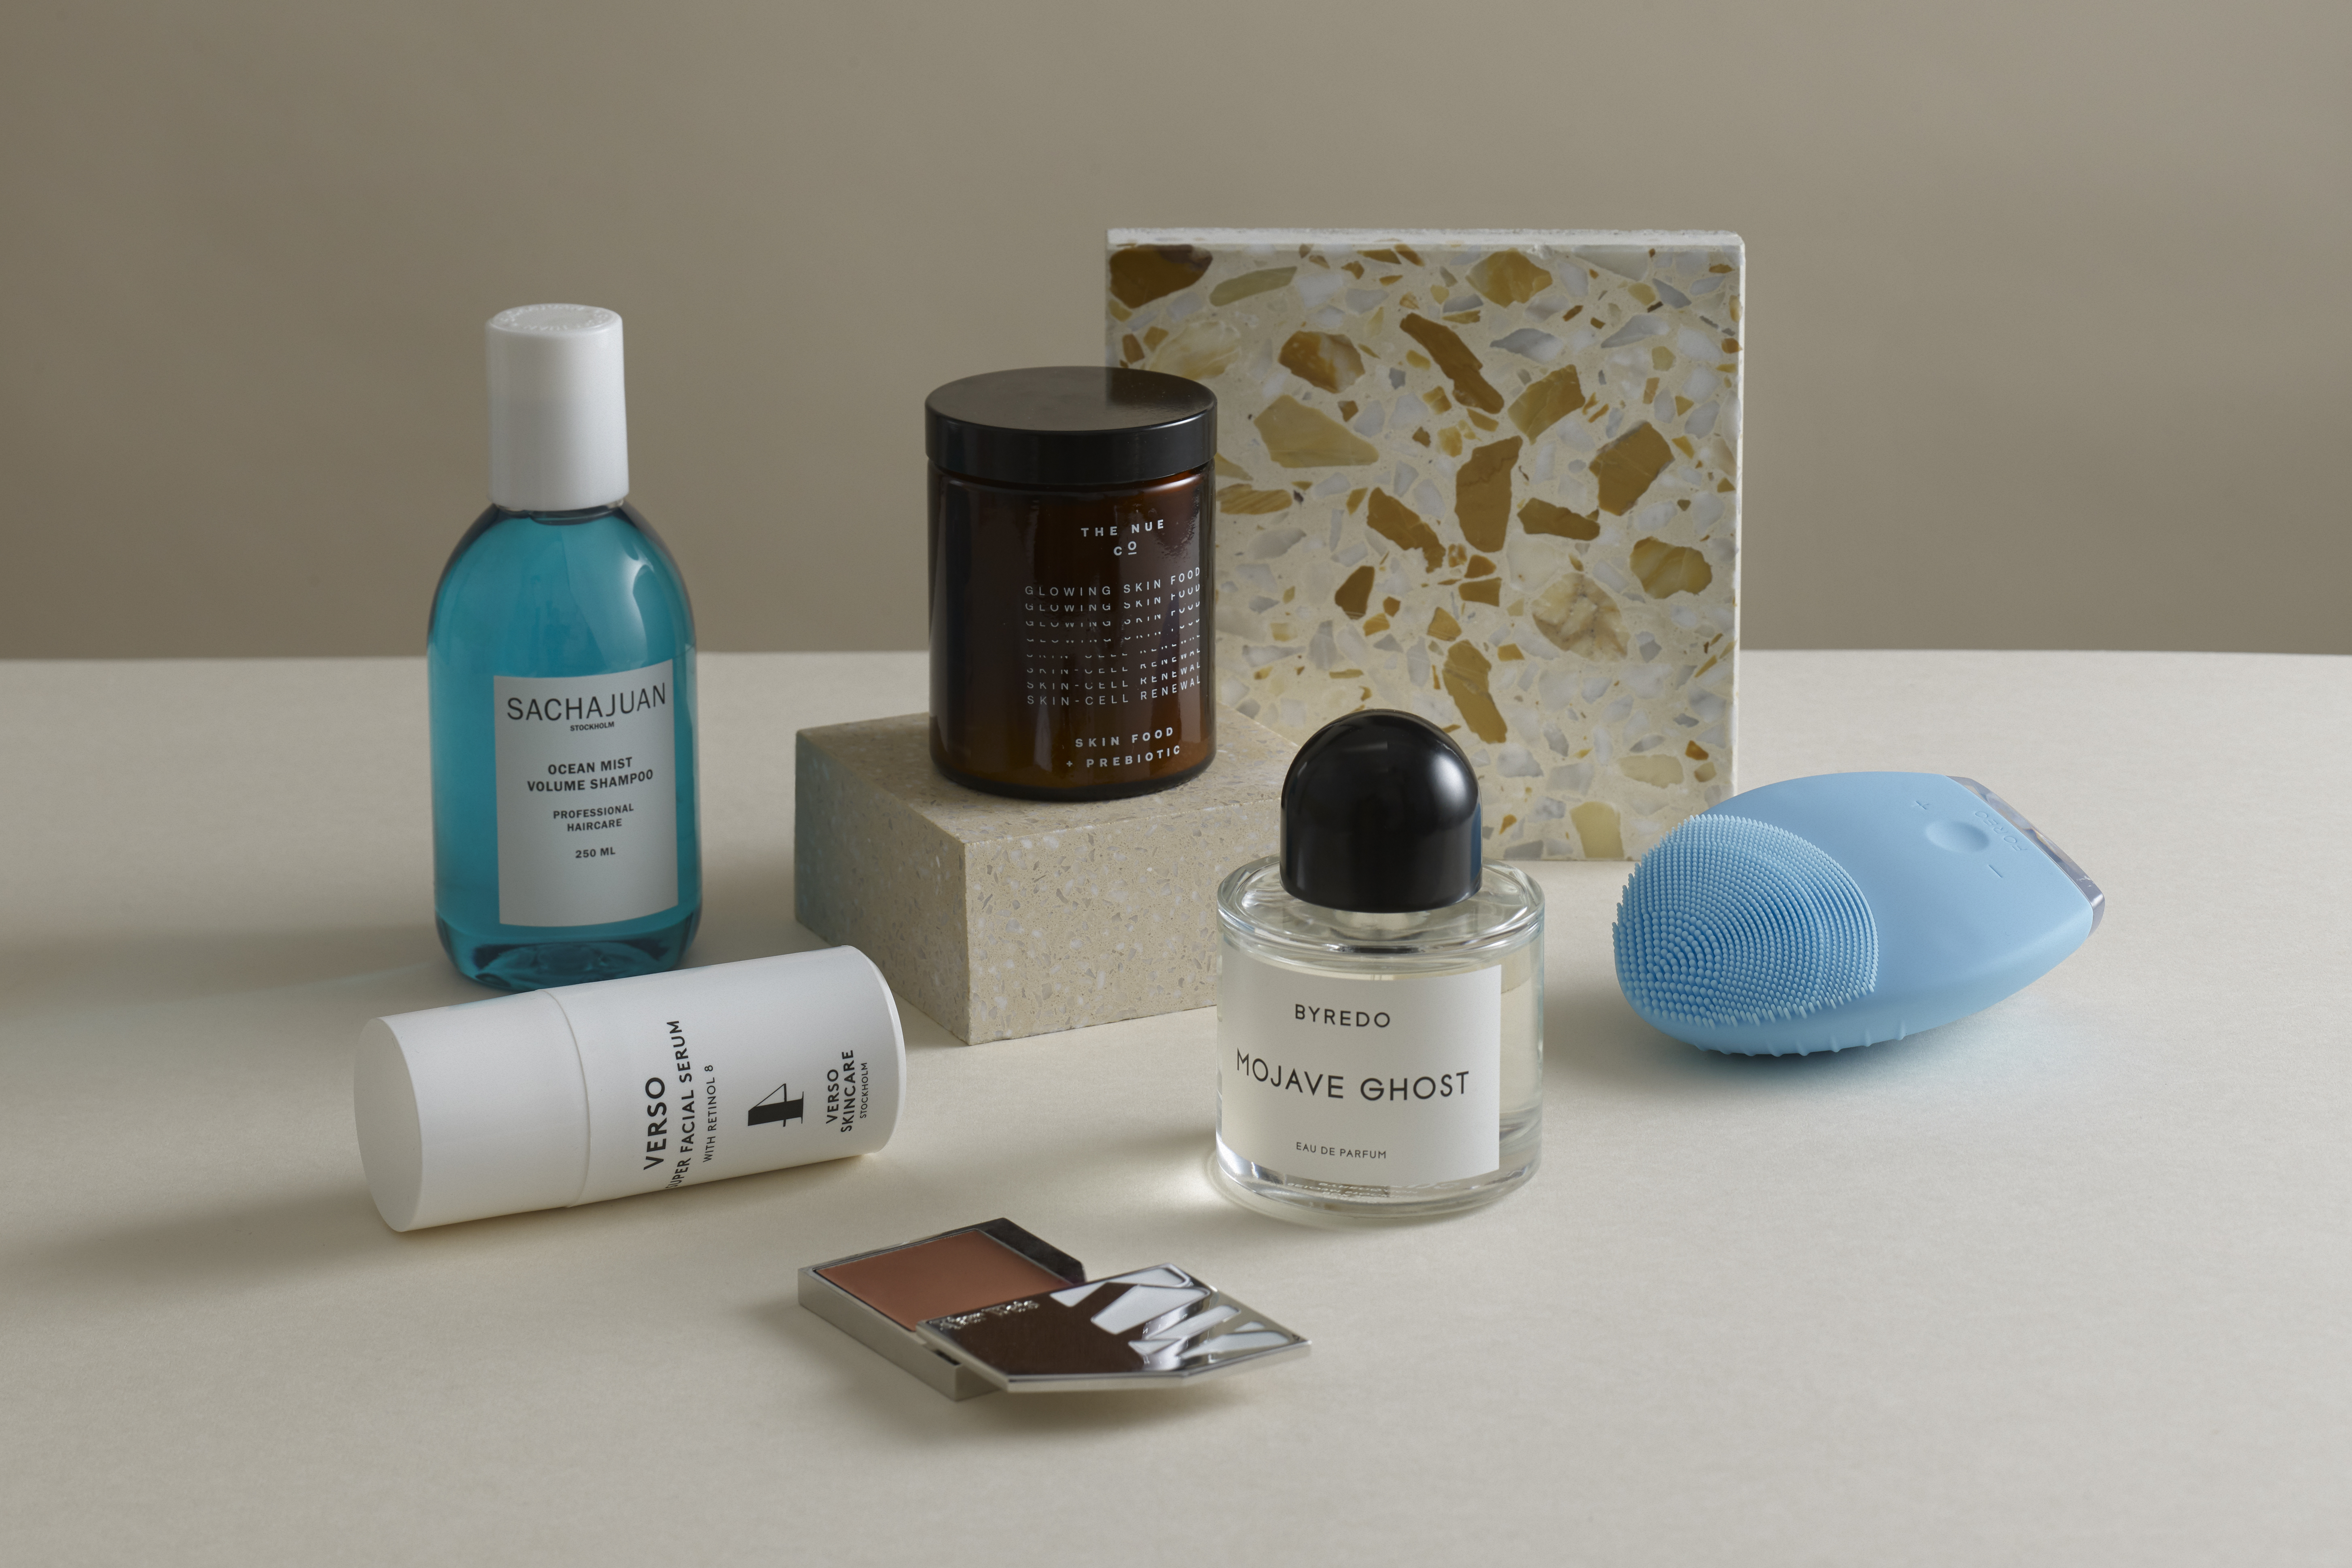 Scandinavian Beauty The Products